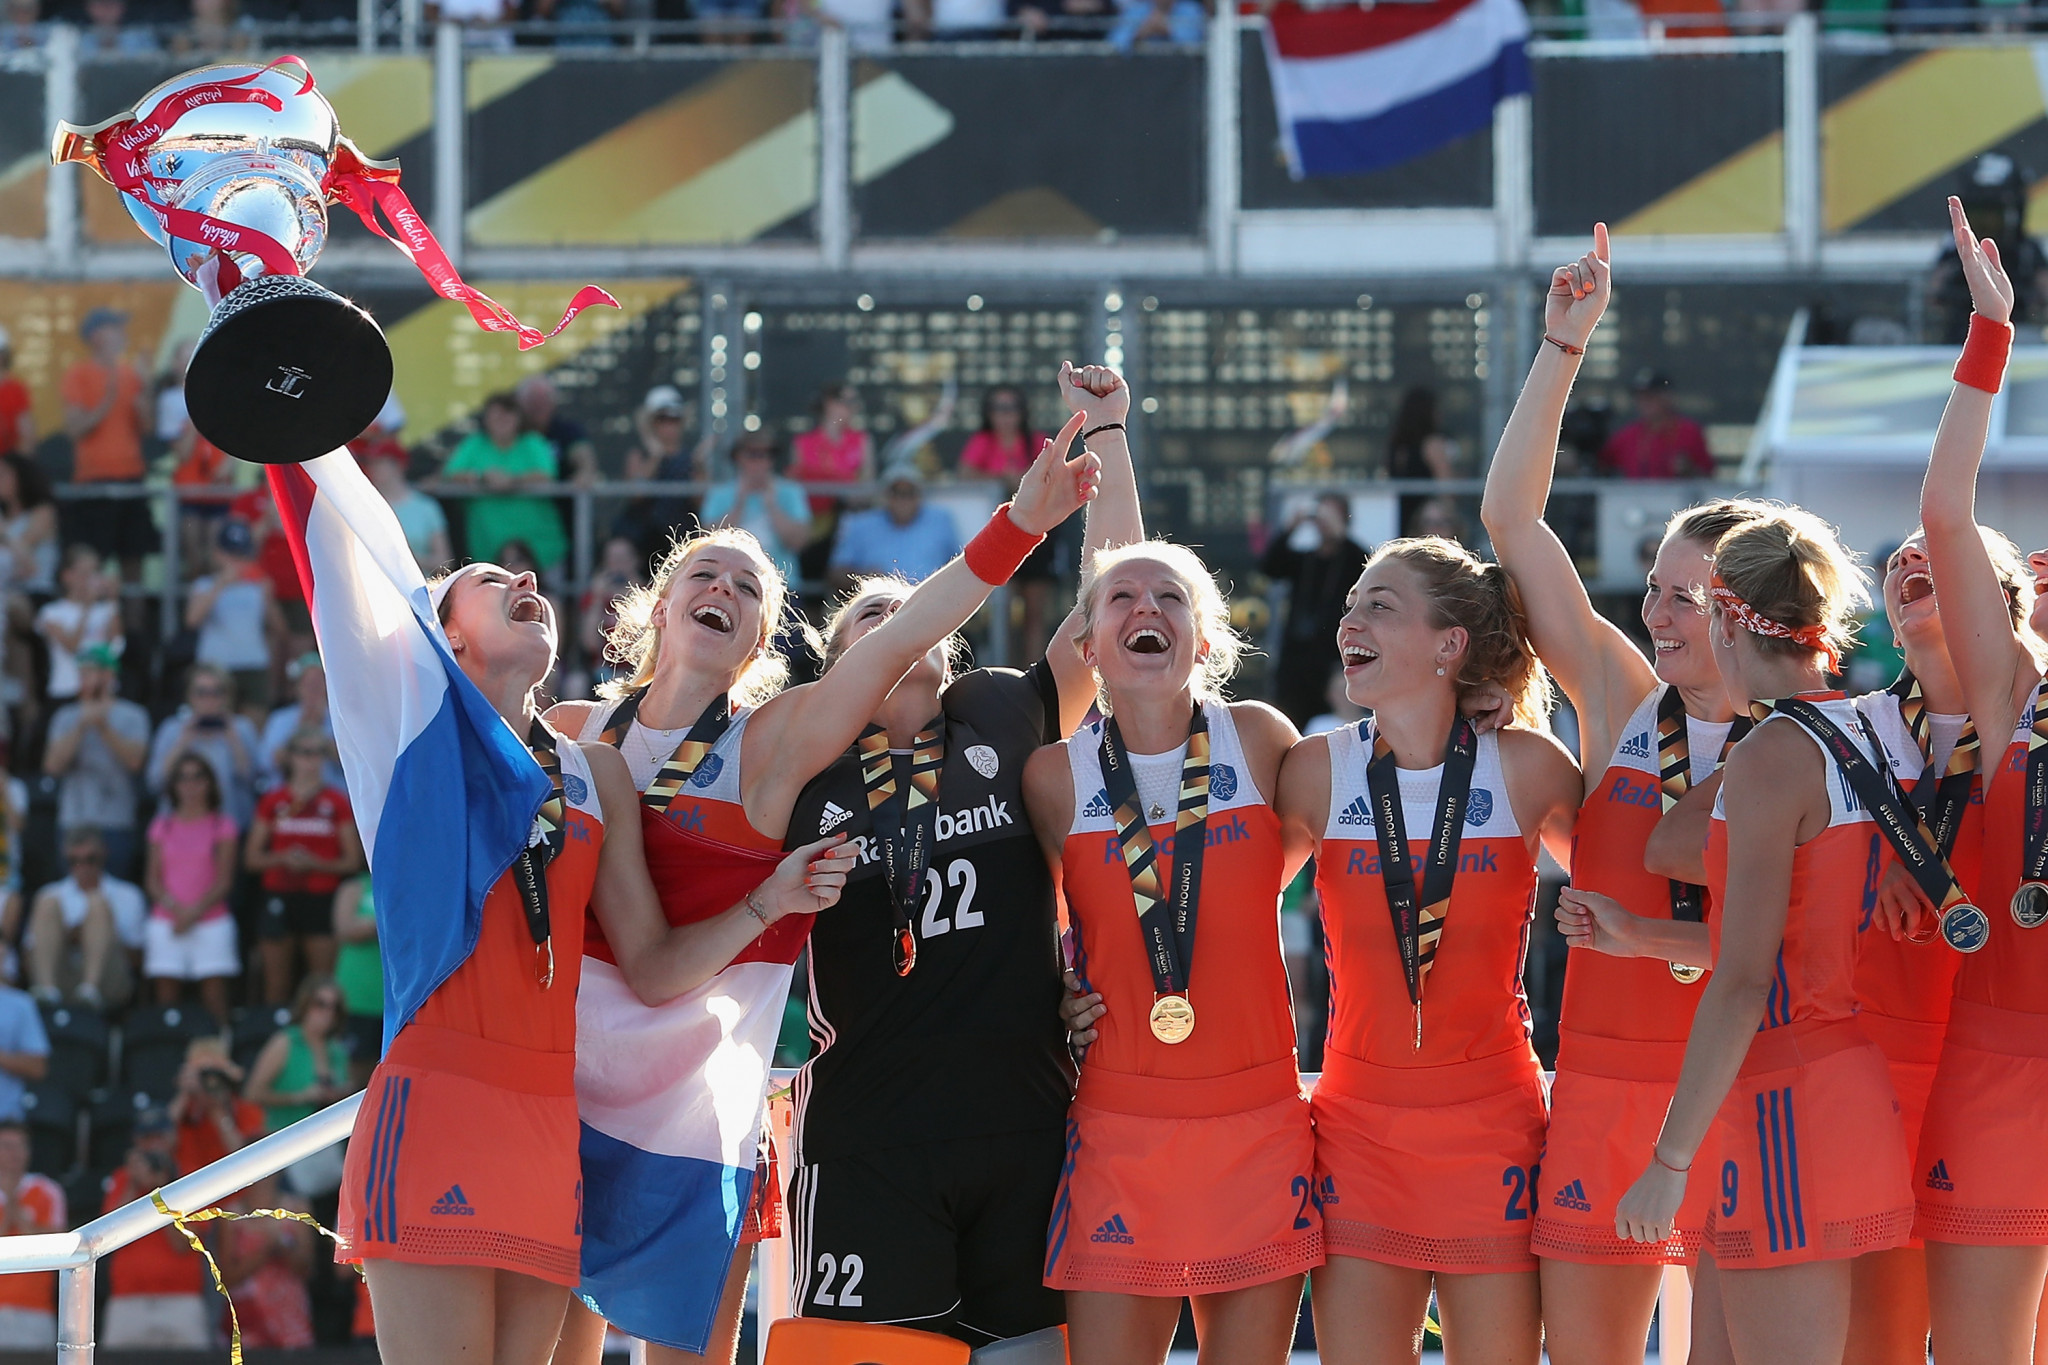 Ziggo Sport clinch deal with FIH for media rights in The Netherlands